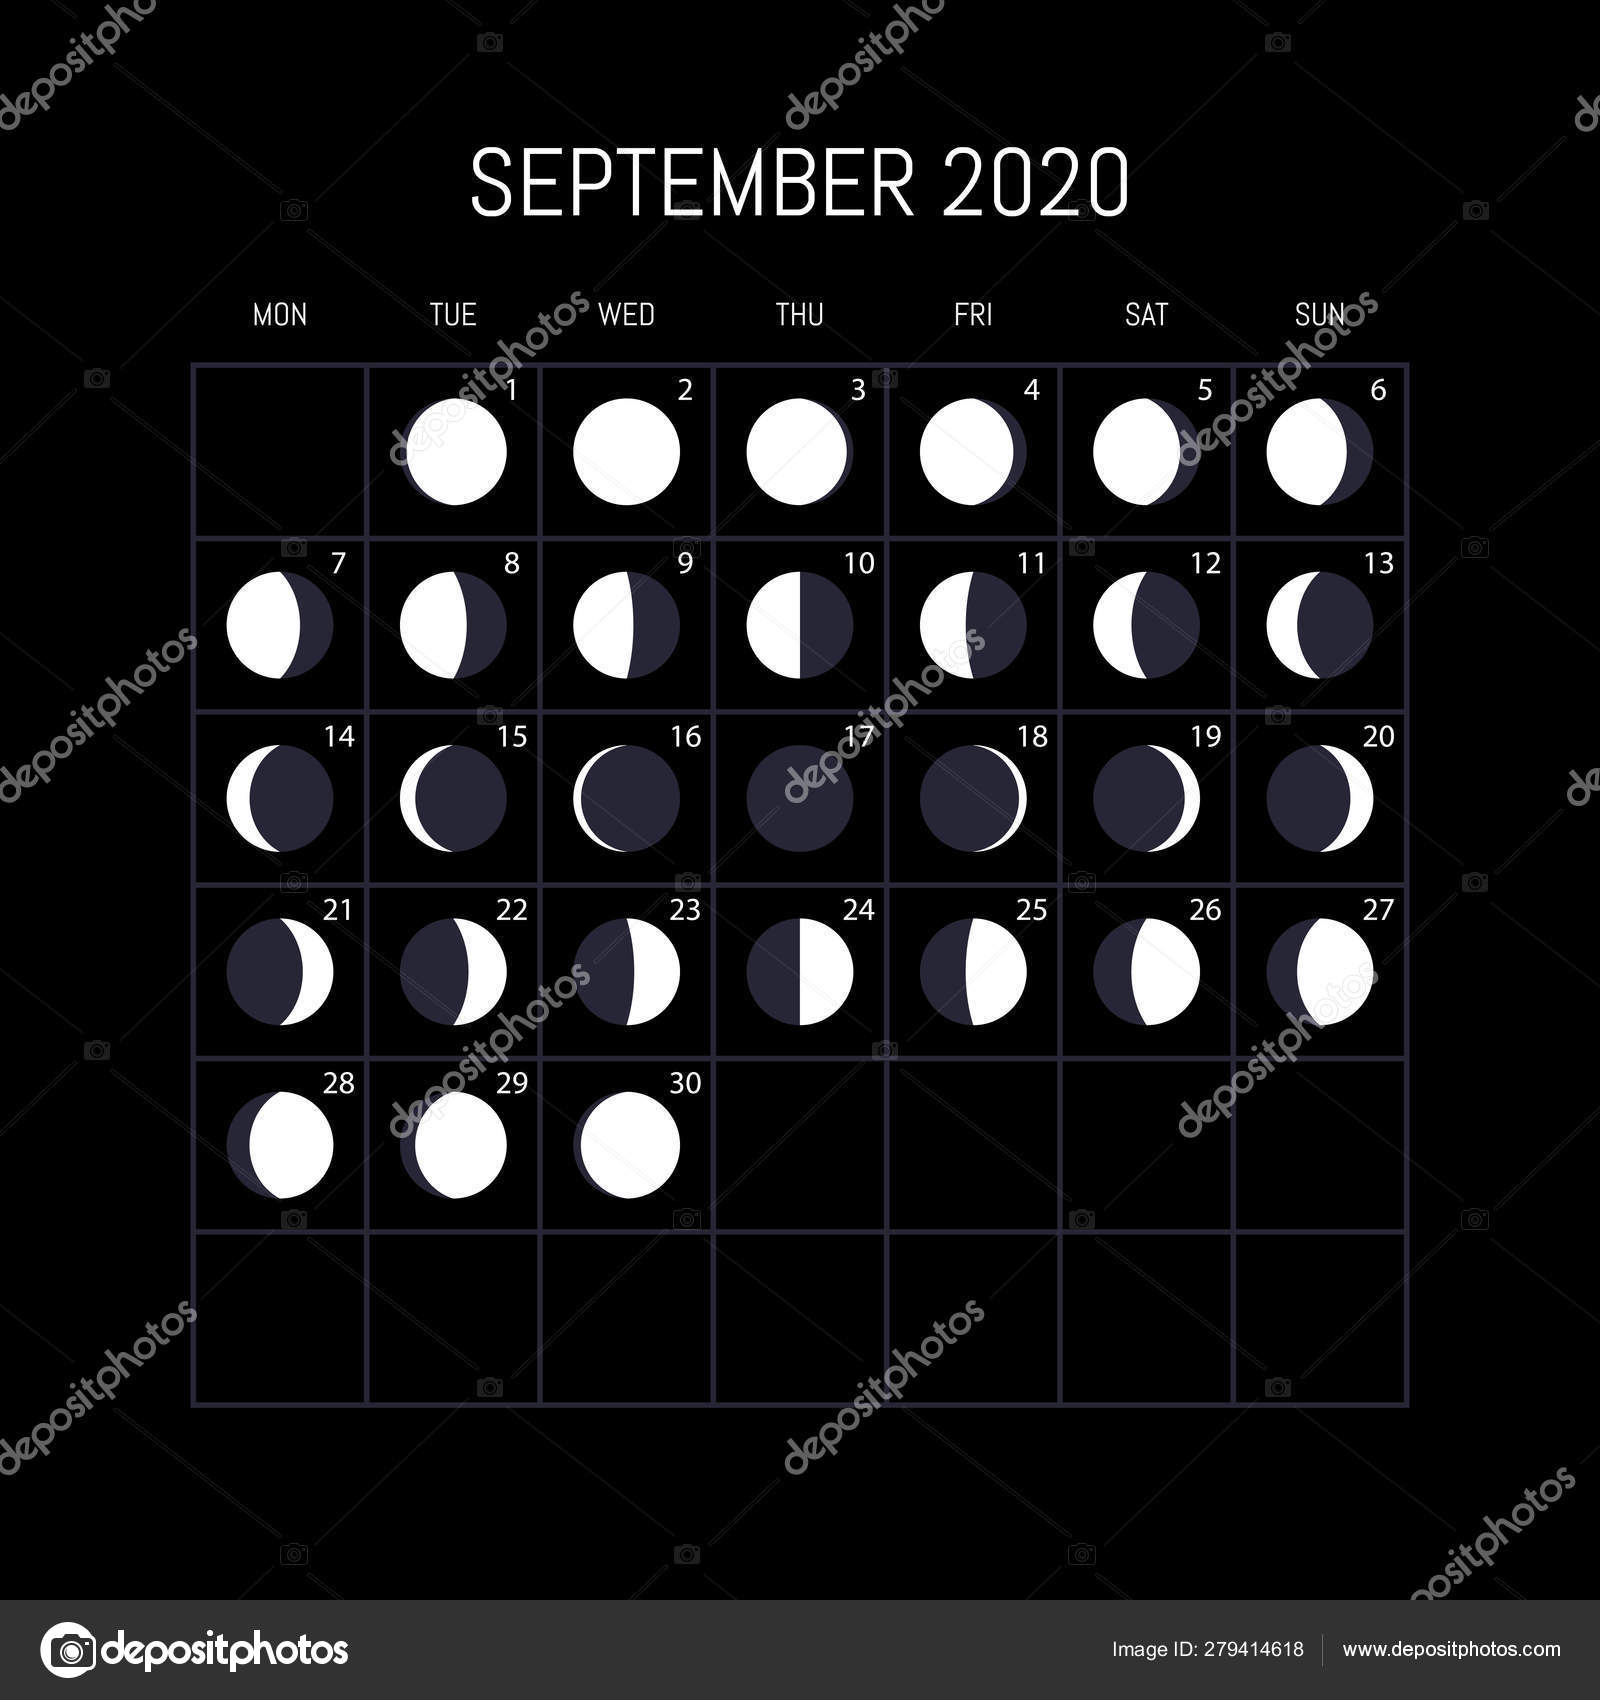 Moon Calendar September 2020 Top 10 Punto Medio Noticias | Moon Calendar September 2020